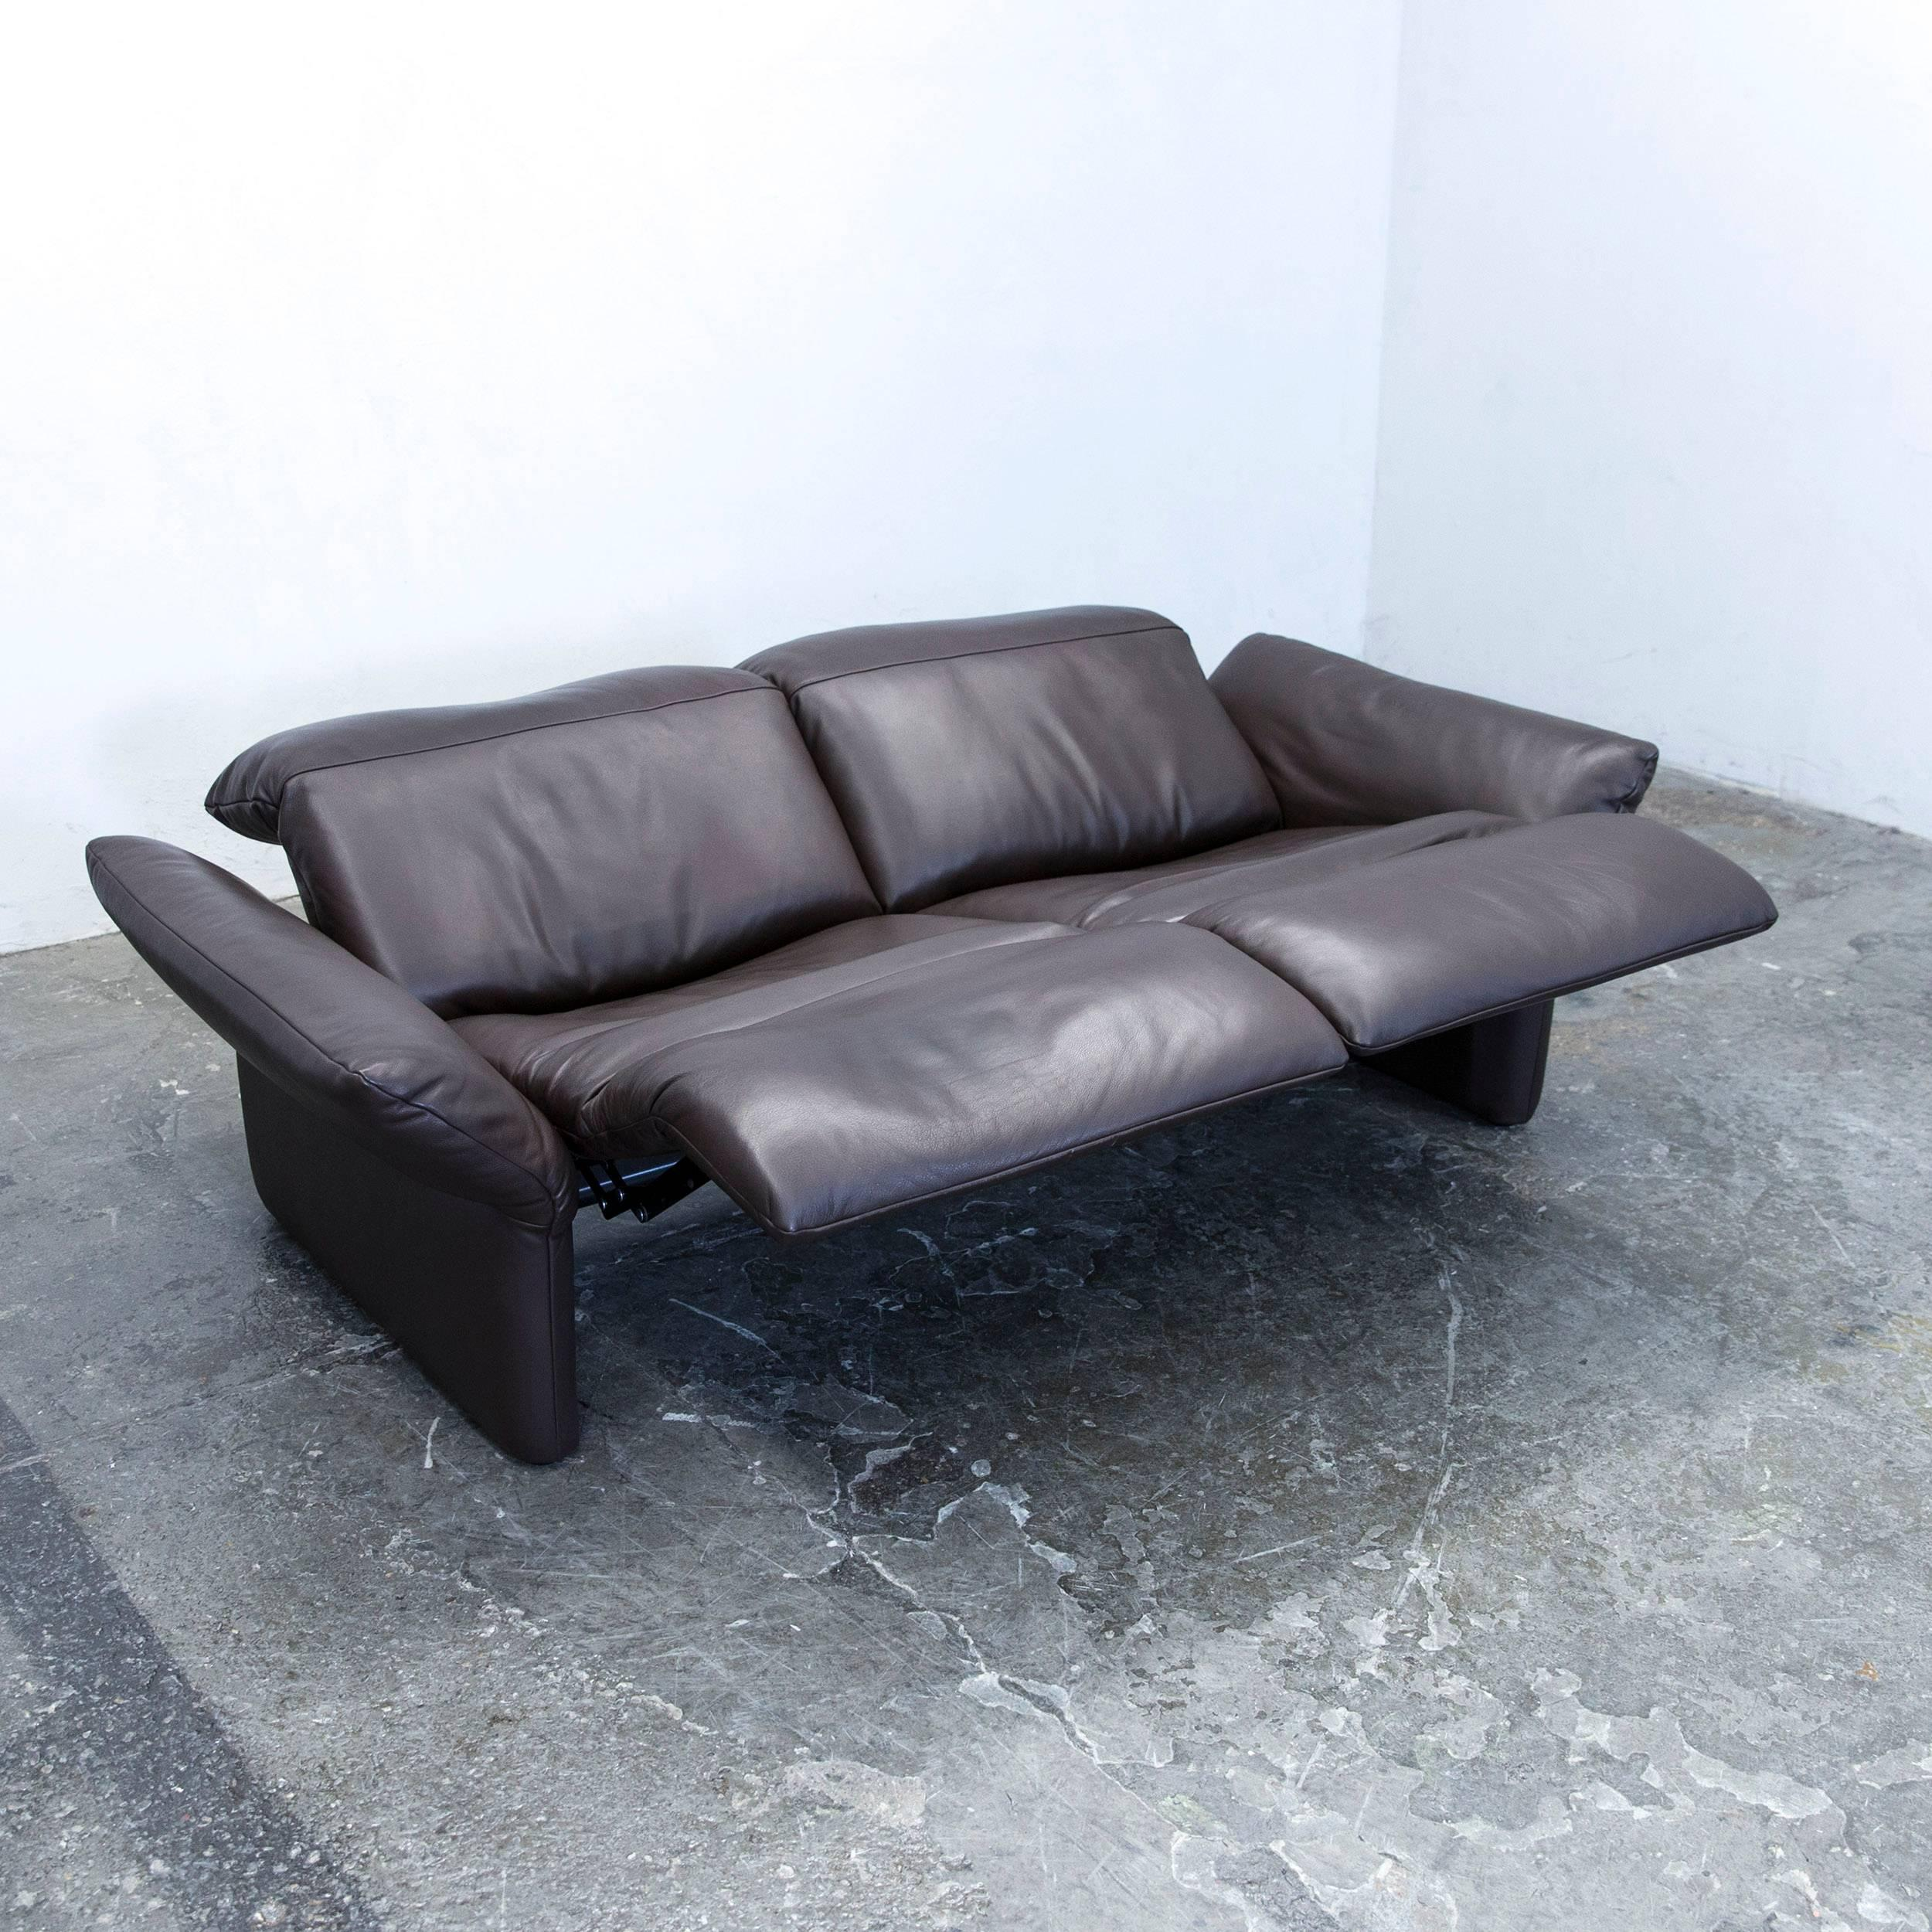 Affordable Koinor Elena Designer Sofa Leather Brown Twoseat Couch Function  In Good Condition For Sale With Sofalufer Braun With Couchecke Leder